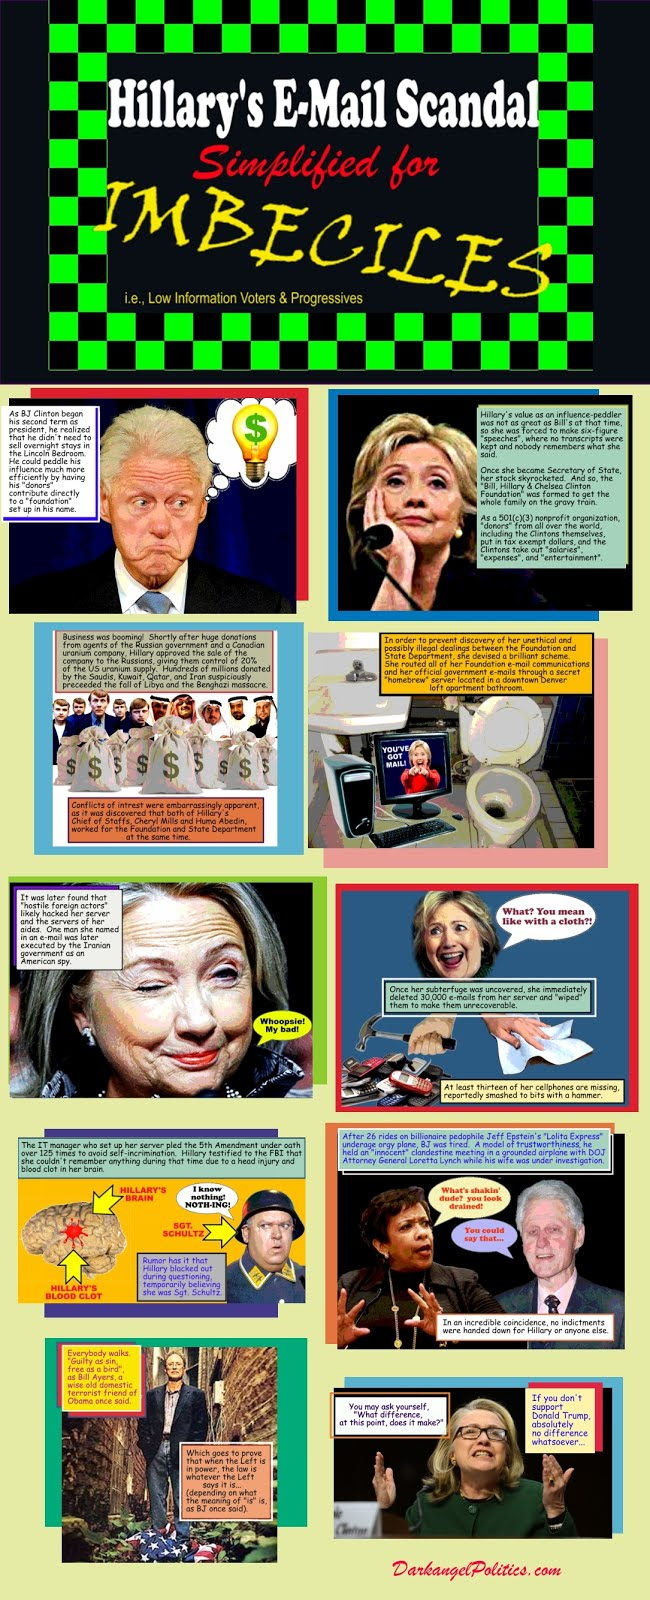 Hilary's E-Mail Scandal for Imbeciles